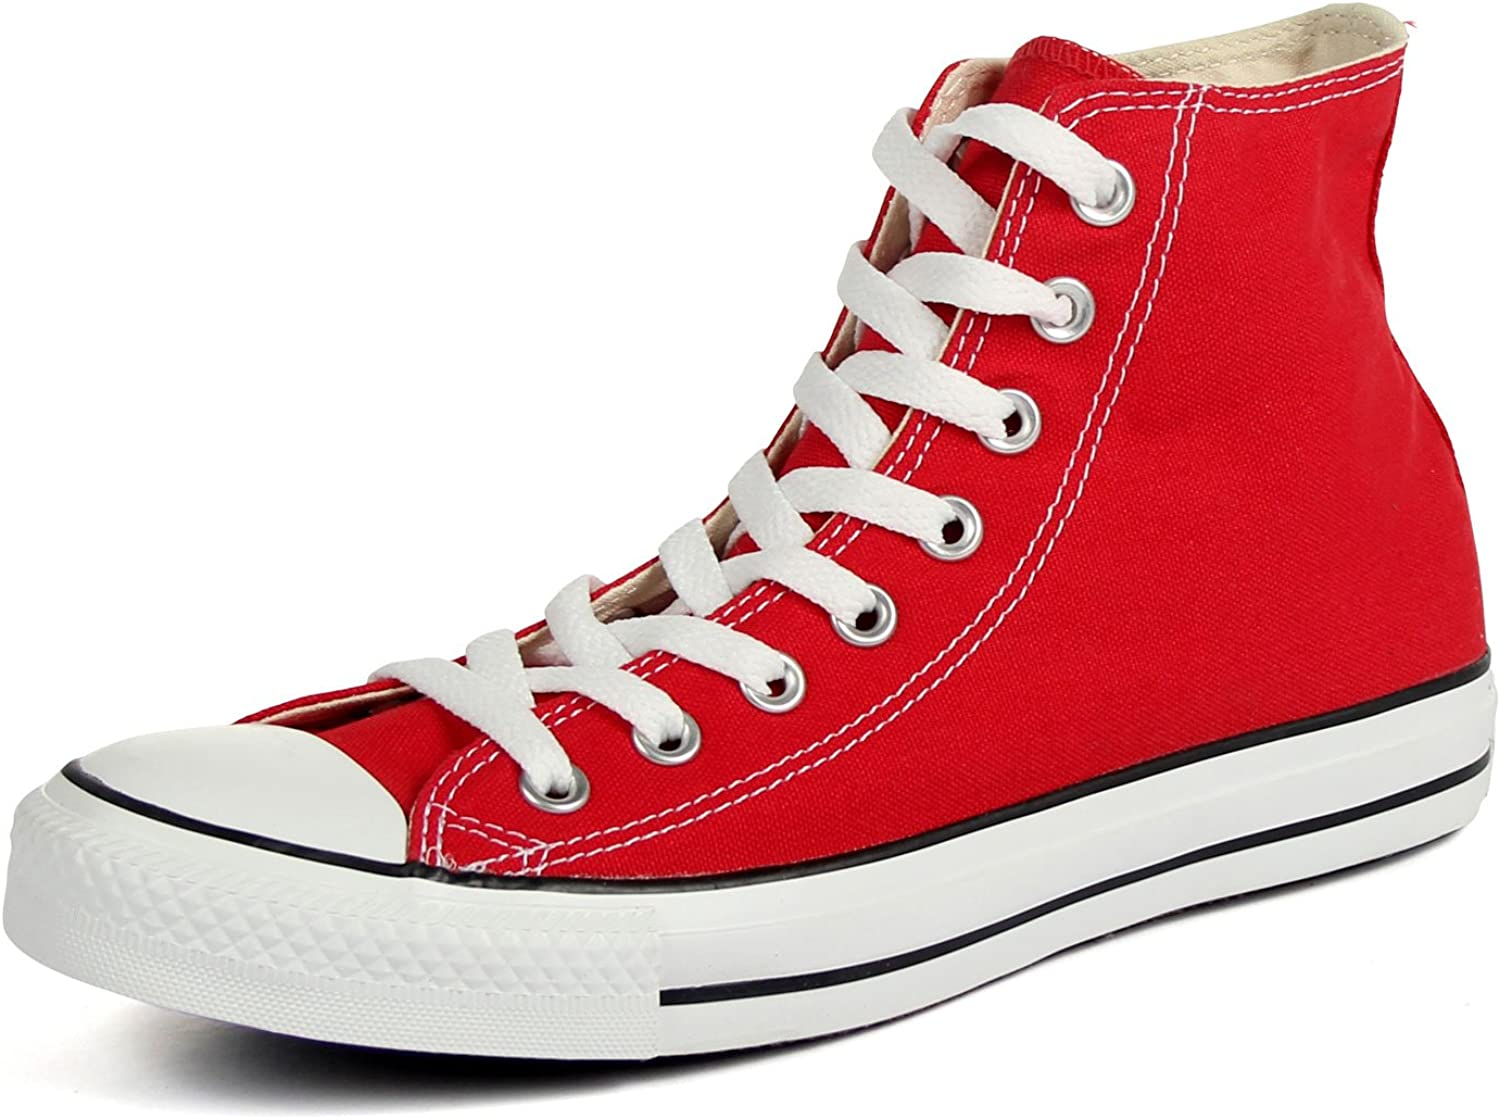 Converse Chuck Taylor All Star High Top Core colors (6.5 D(M) US, Red)